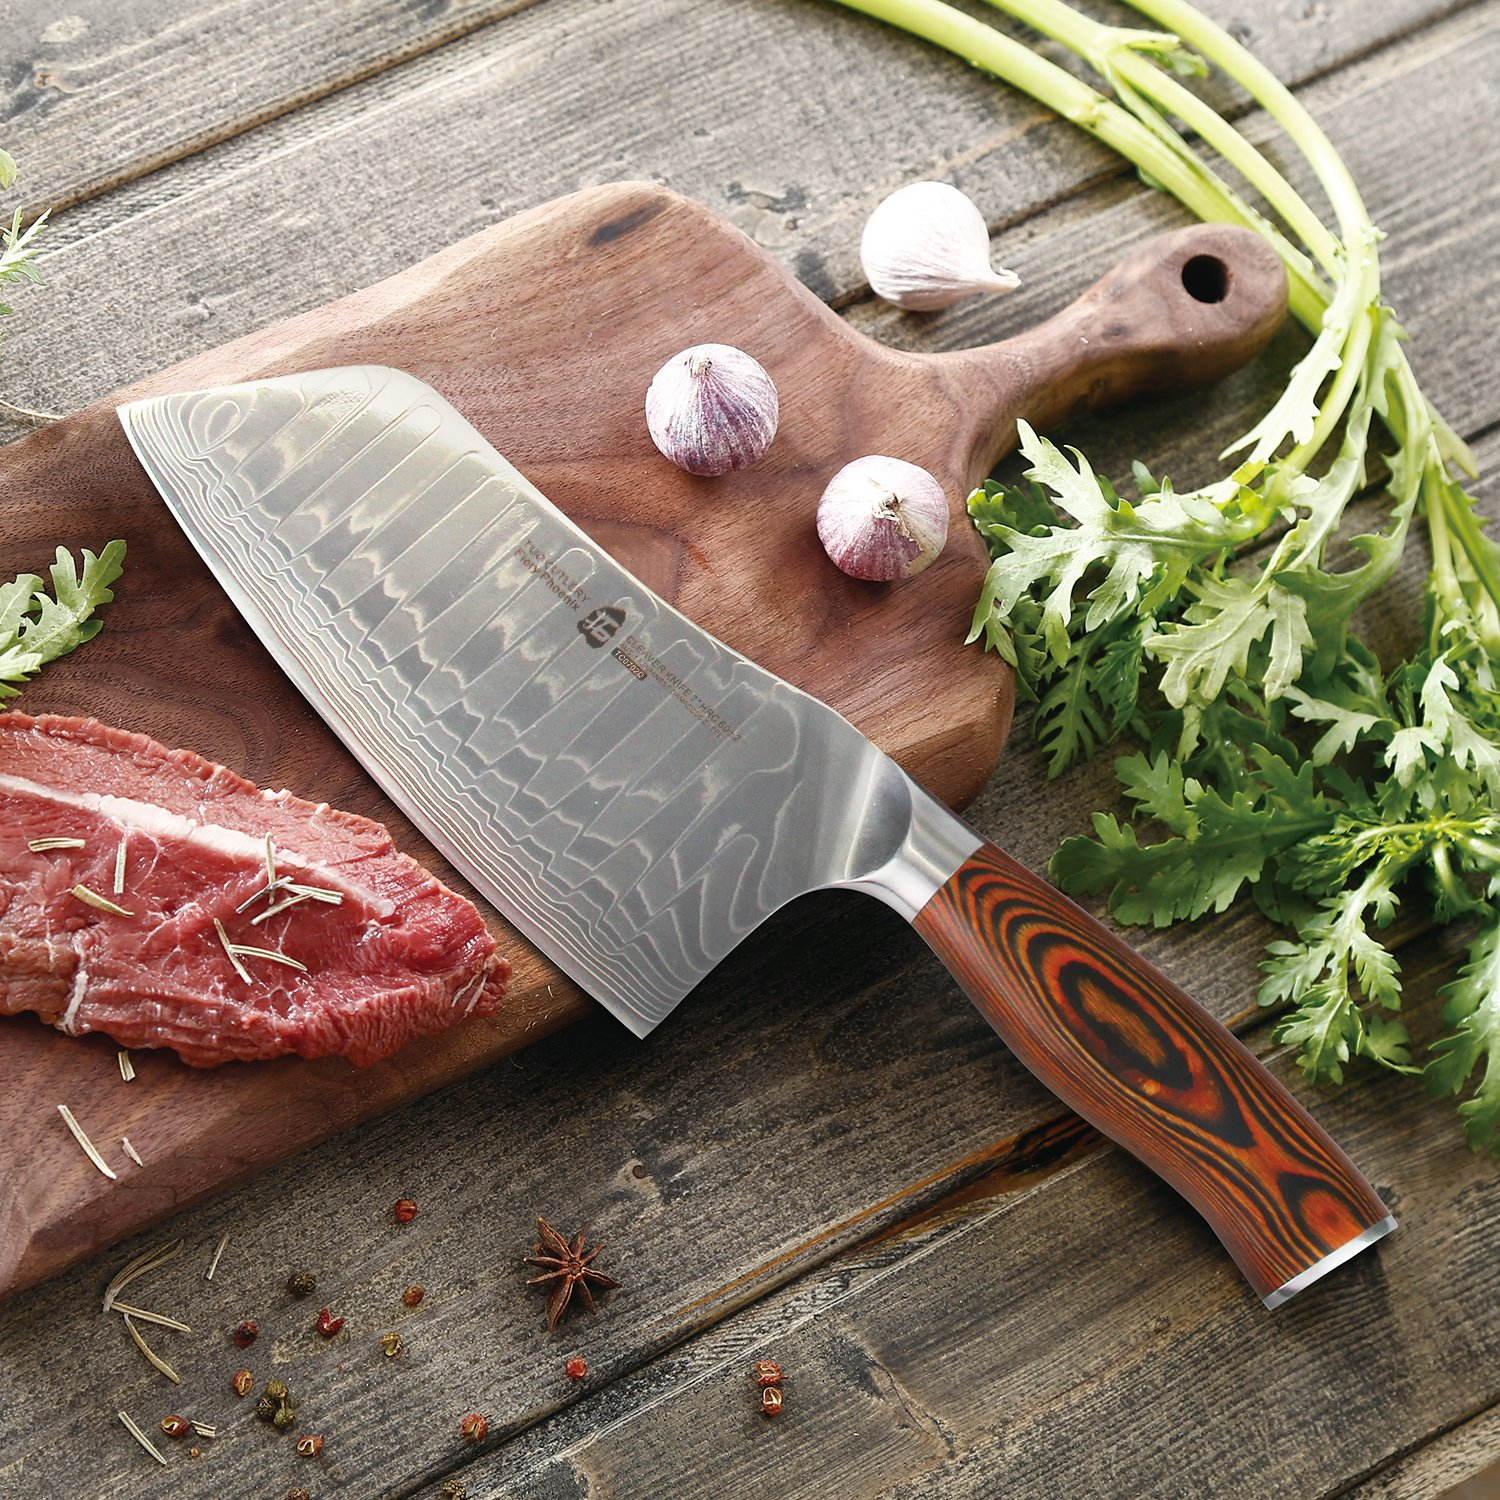 TUO Cutlery Cleaver Knife - Japanese AUS-10 Damascus Steel - Chinese Chef's Knife for meat and vegetable with Ergonomic Pakkawood Handle - 7'' - Fiery Phoenix Series by TUO Cutlery (Image #4)